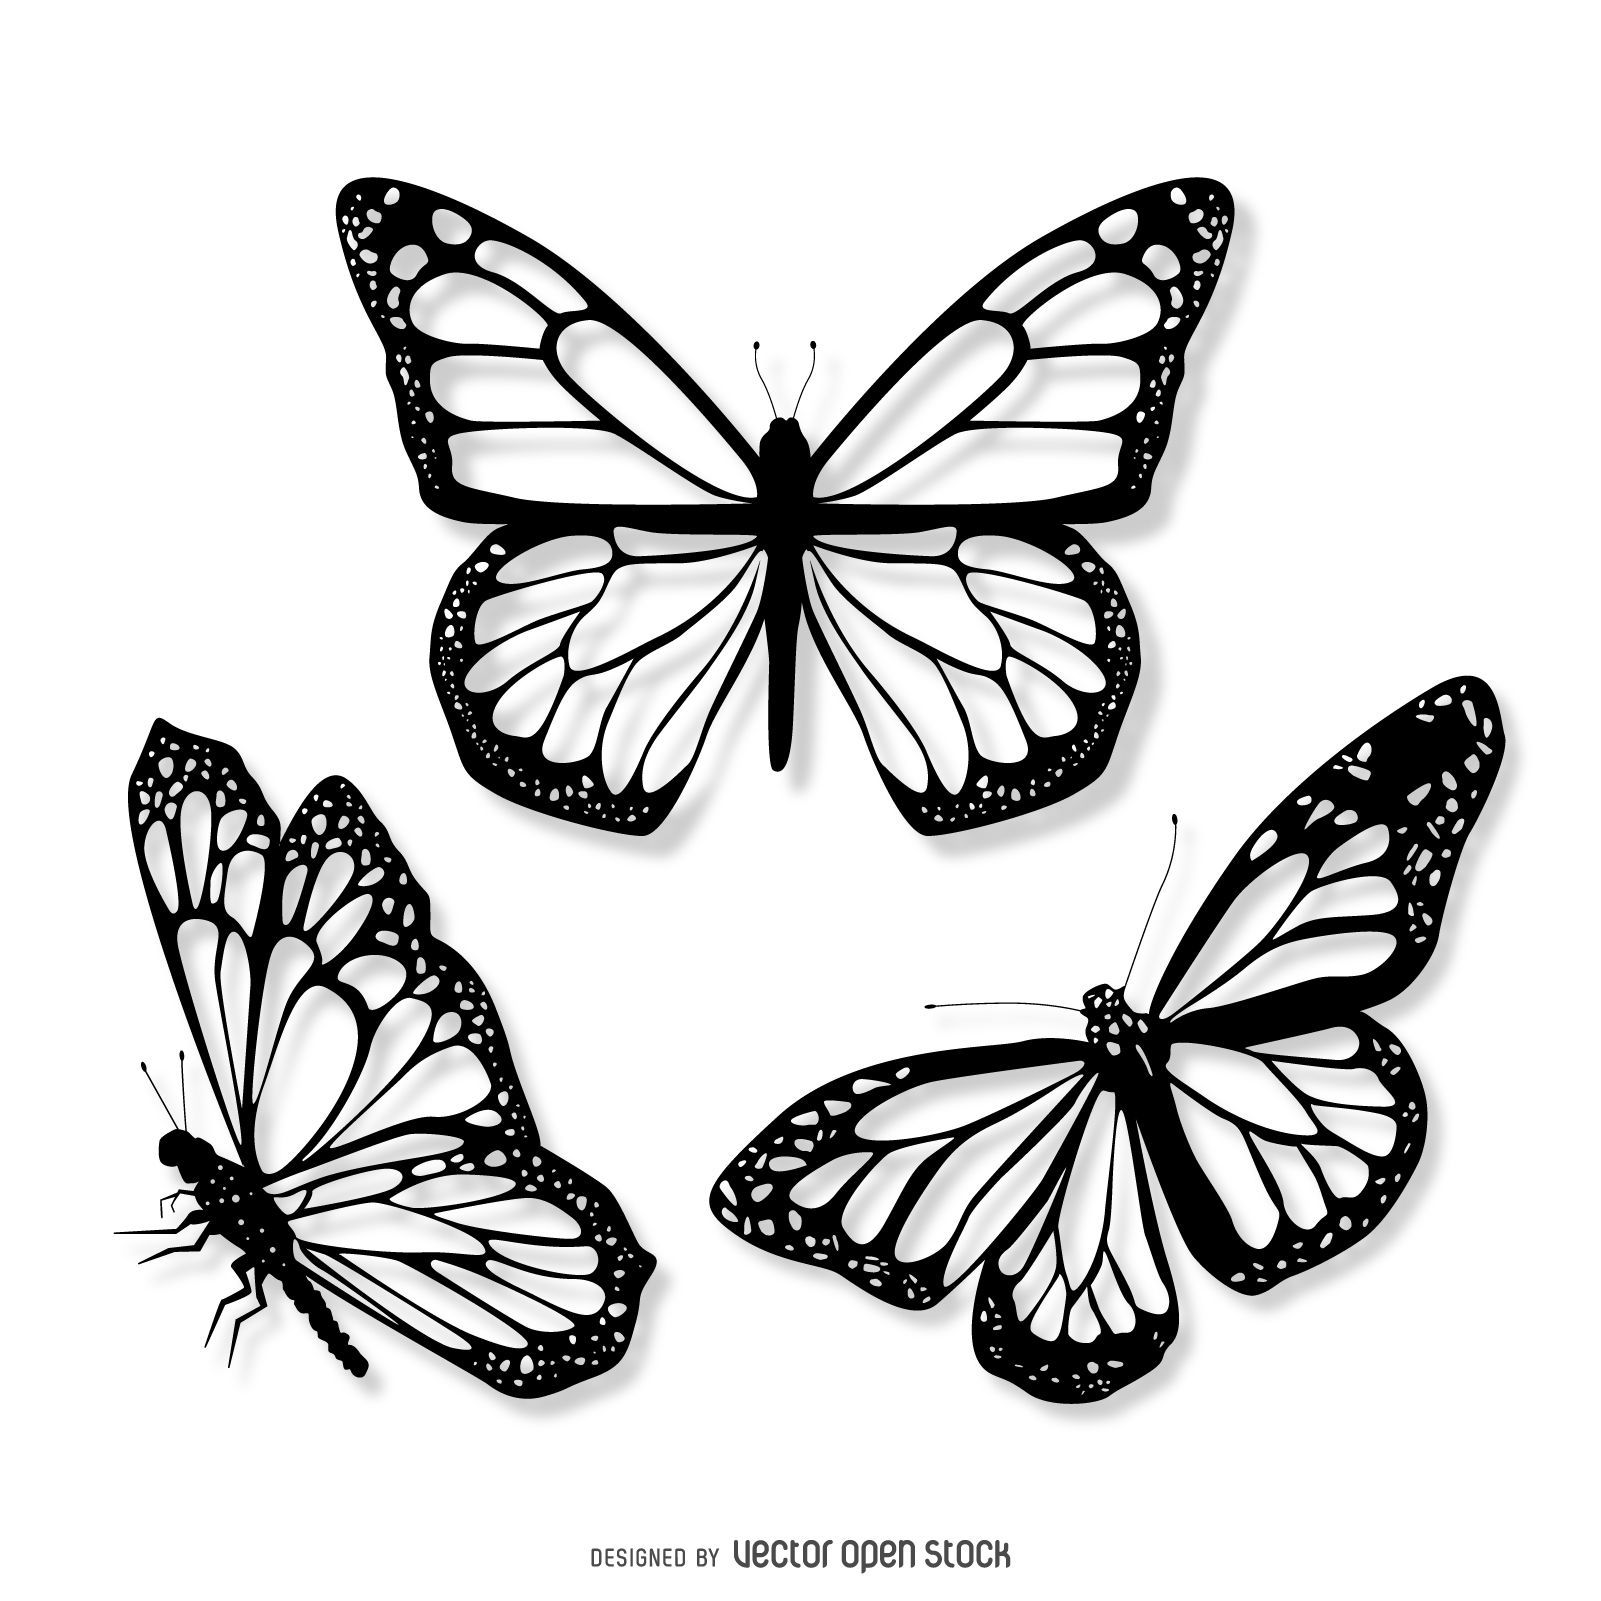 Verbreitet Grauzone Der Tiere Von Einer Spezies Auf Zwei Ubergang In 2020 Butterfly Black And White Butterfly Tattoo Designs Butterfly Illustration